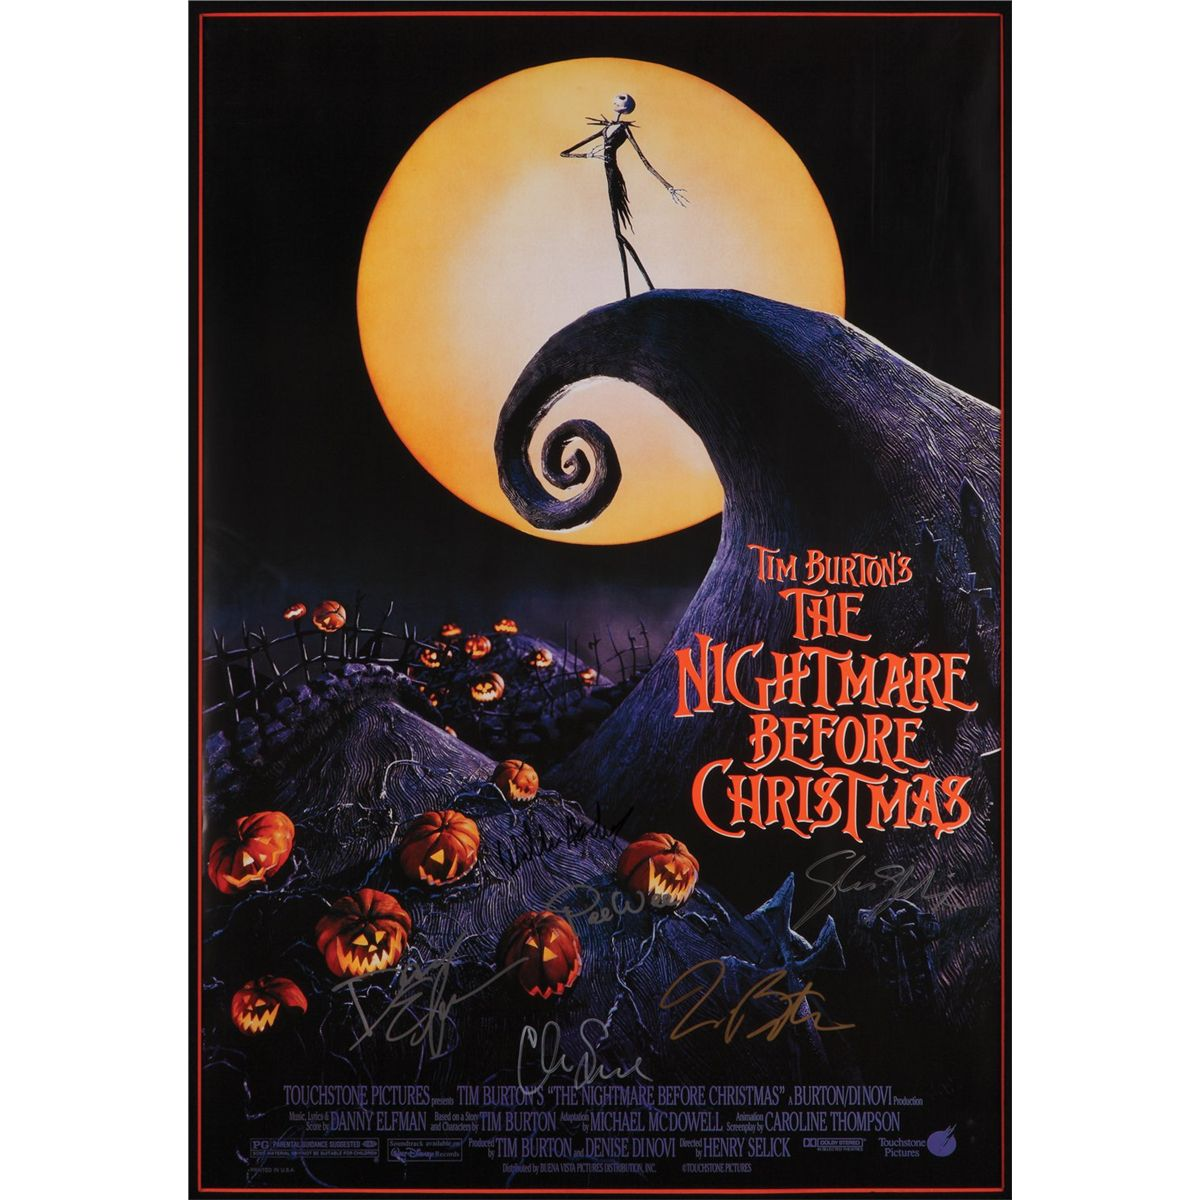 the nightmare before christmas poster signed by tim burton danny elfman and other cast members - Tim Burtons The Nightmare Before Christmas